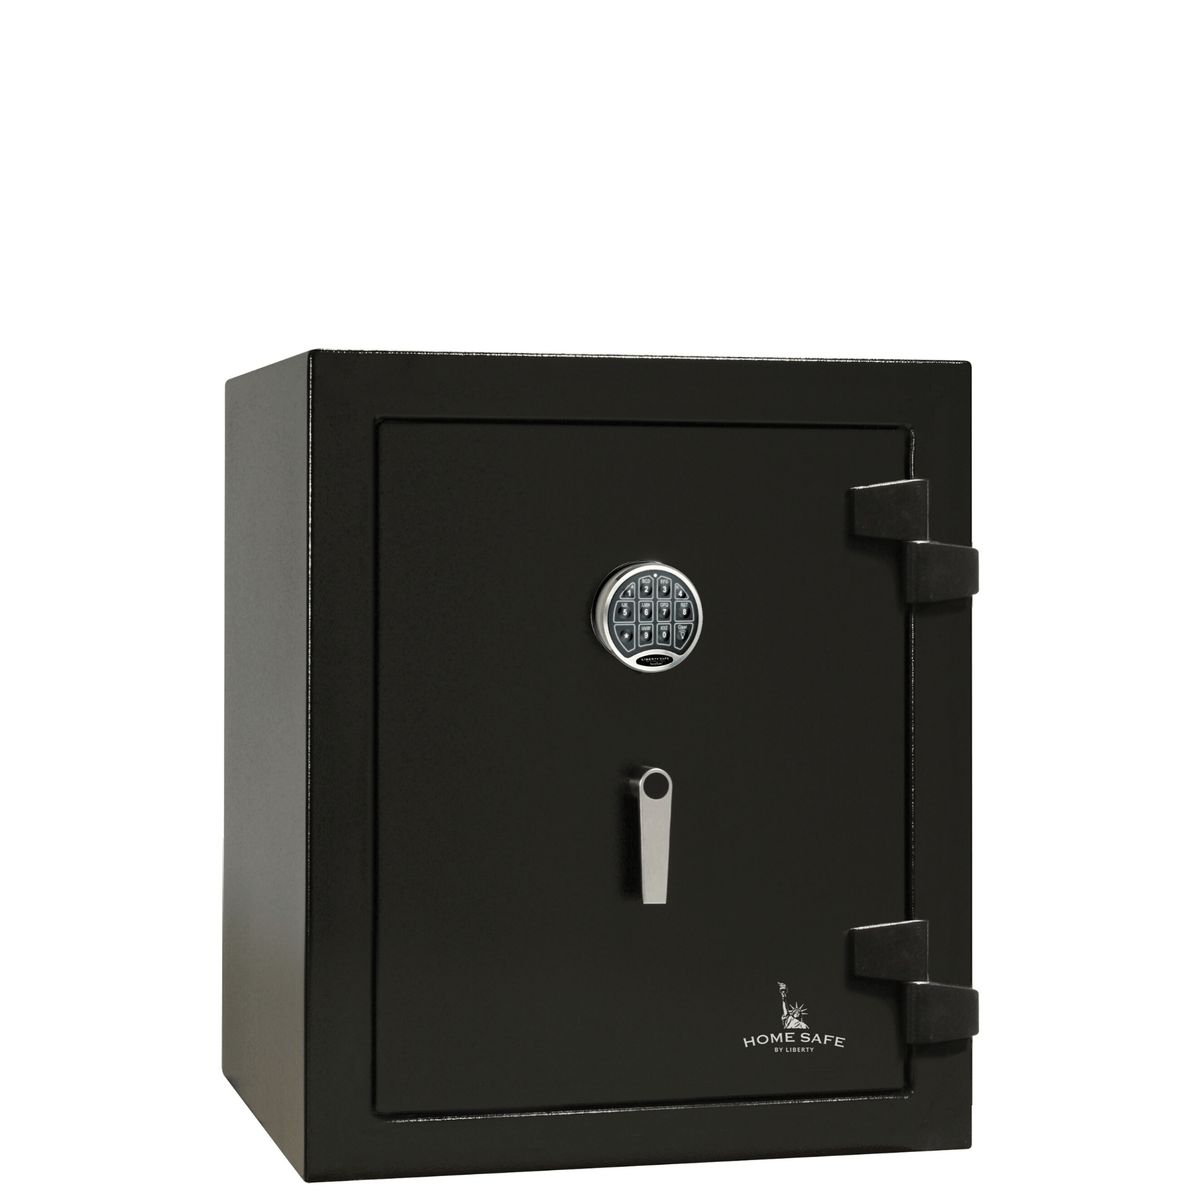 "Home Safe | 08 | 60 Minute Fire Protection | Black | Electronic Lock | Dimensions: 30""(H) x 24.25""(W) x 22""(D)"